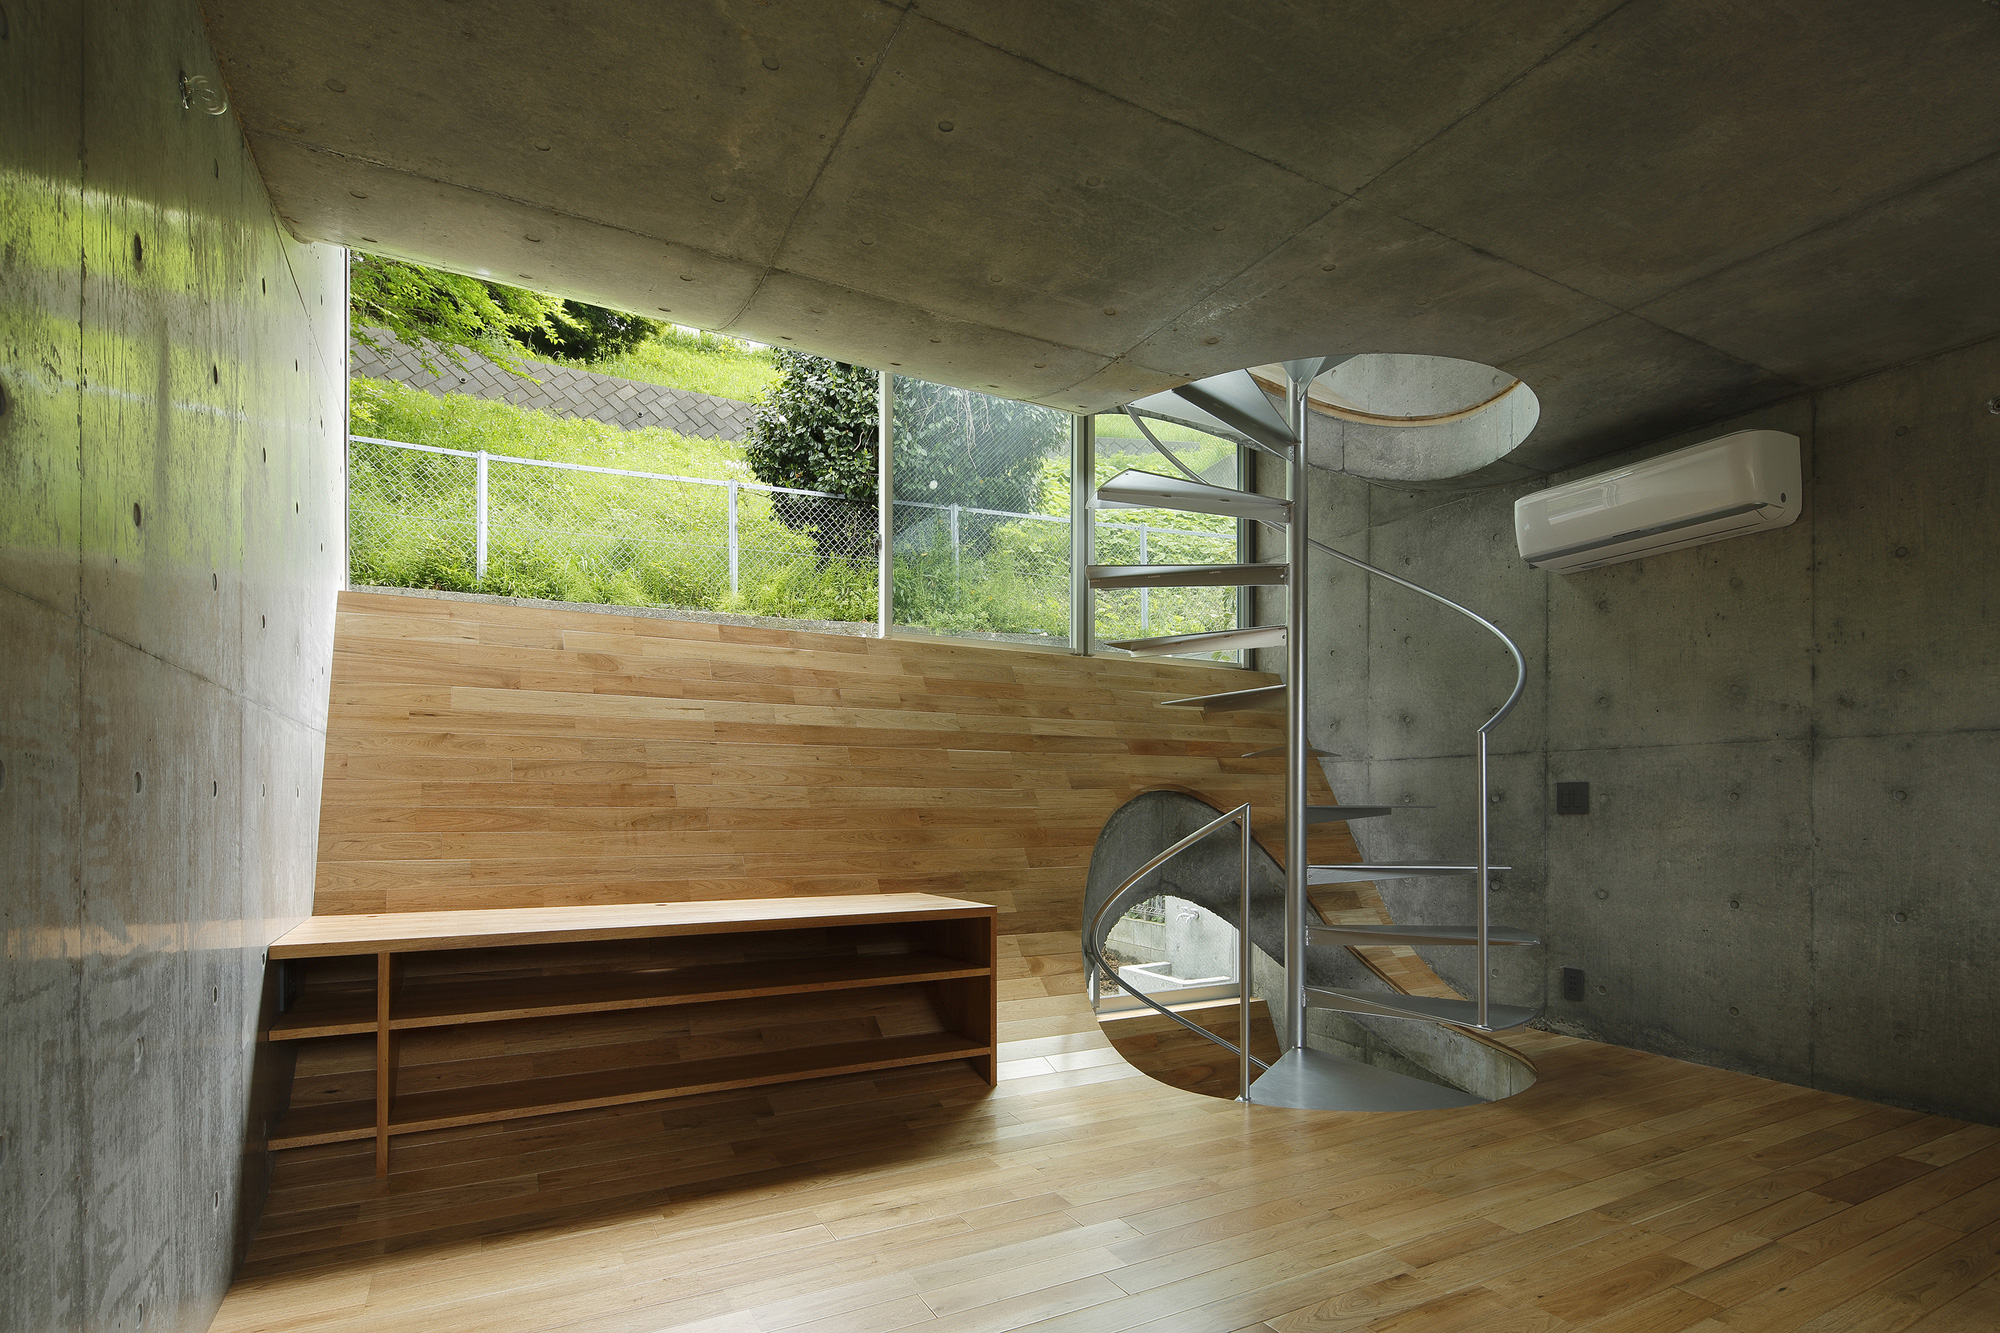 House in Byoubugaura / Takeshi Hosaka (16)